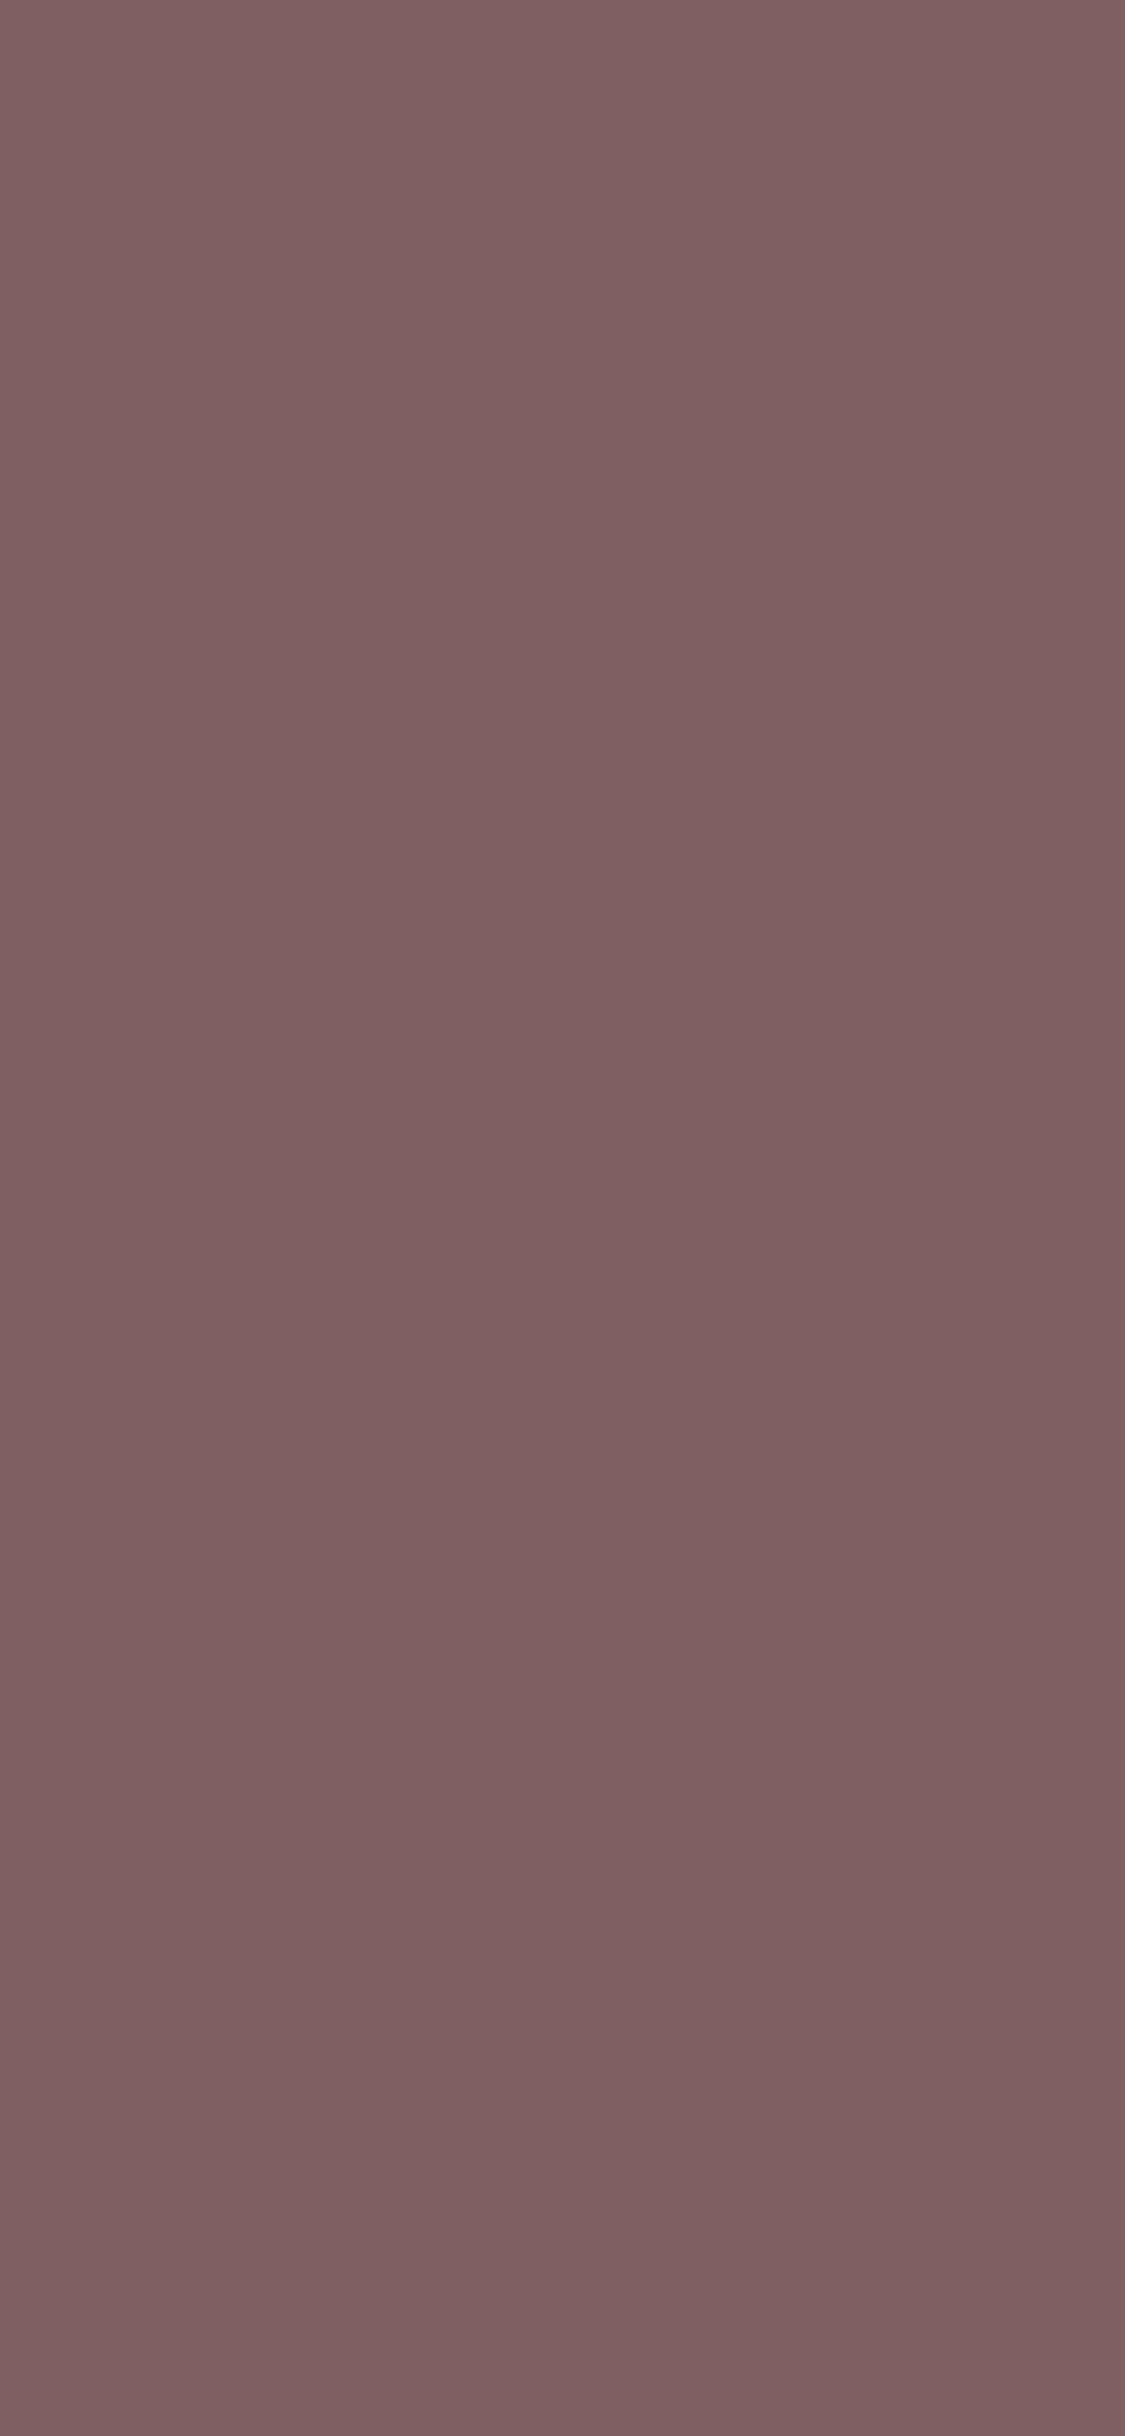 1125x2436 Deep Taupe Solid Color Background